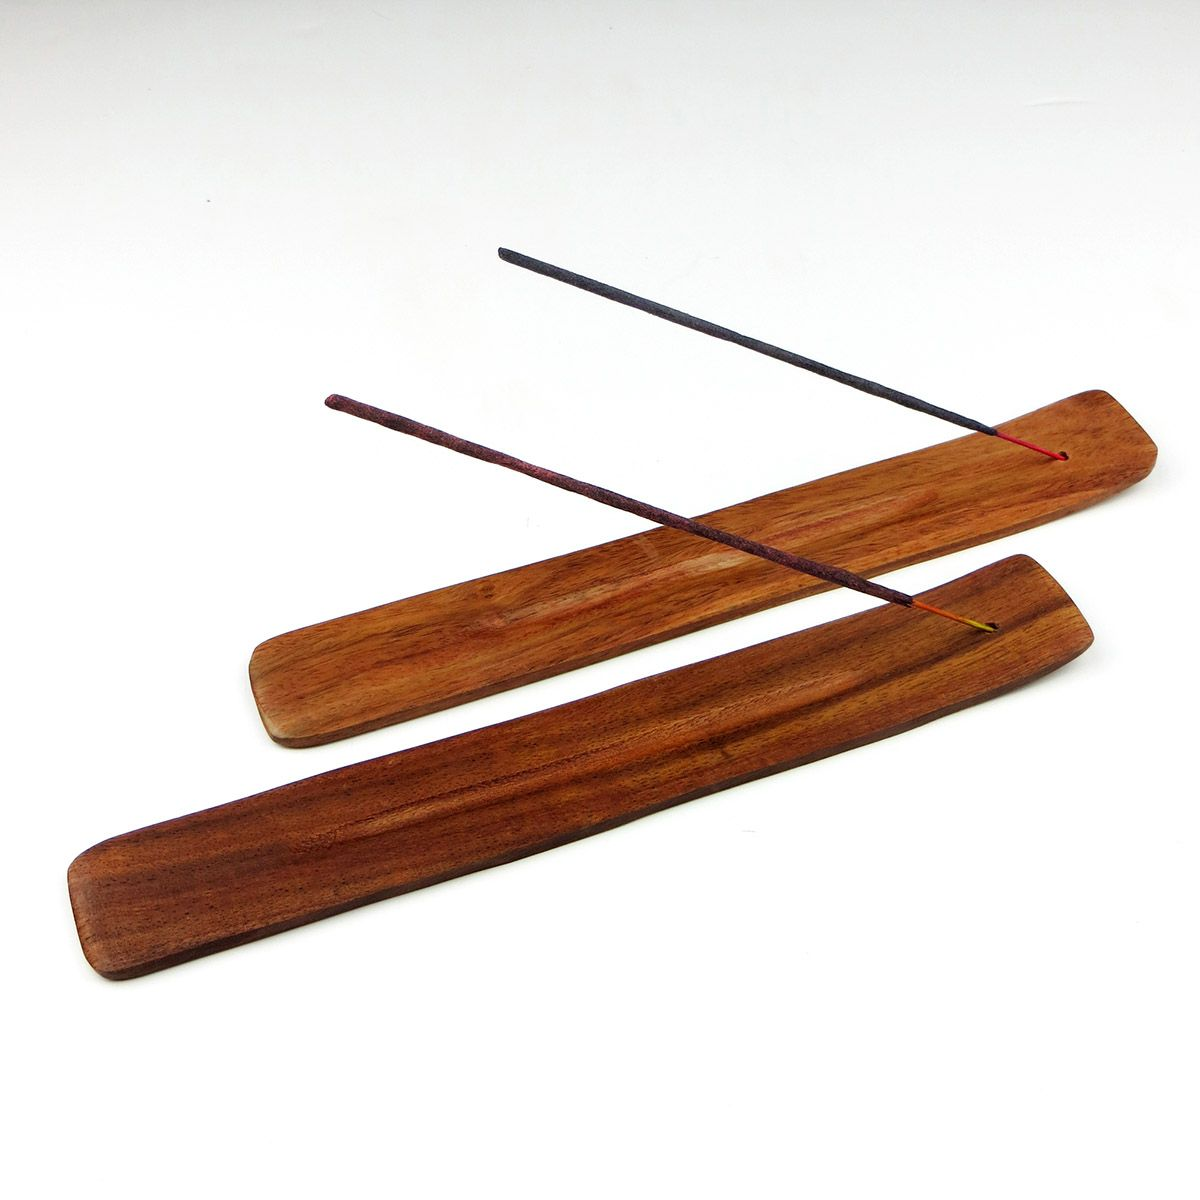 Handmade Plain Wood Incense Stick Holder Basic Ash Catcher For The Daily Buddha Cheap Enough To Have A Incense Sticks Holder Incense Sticks Nature Design